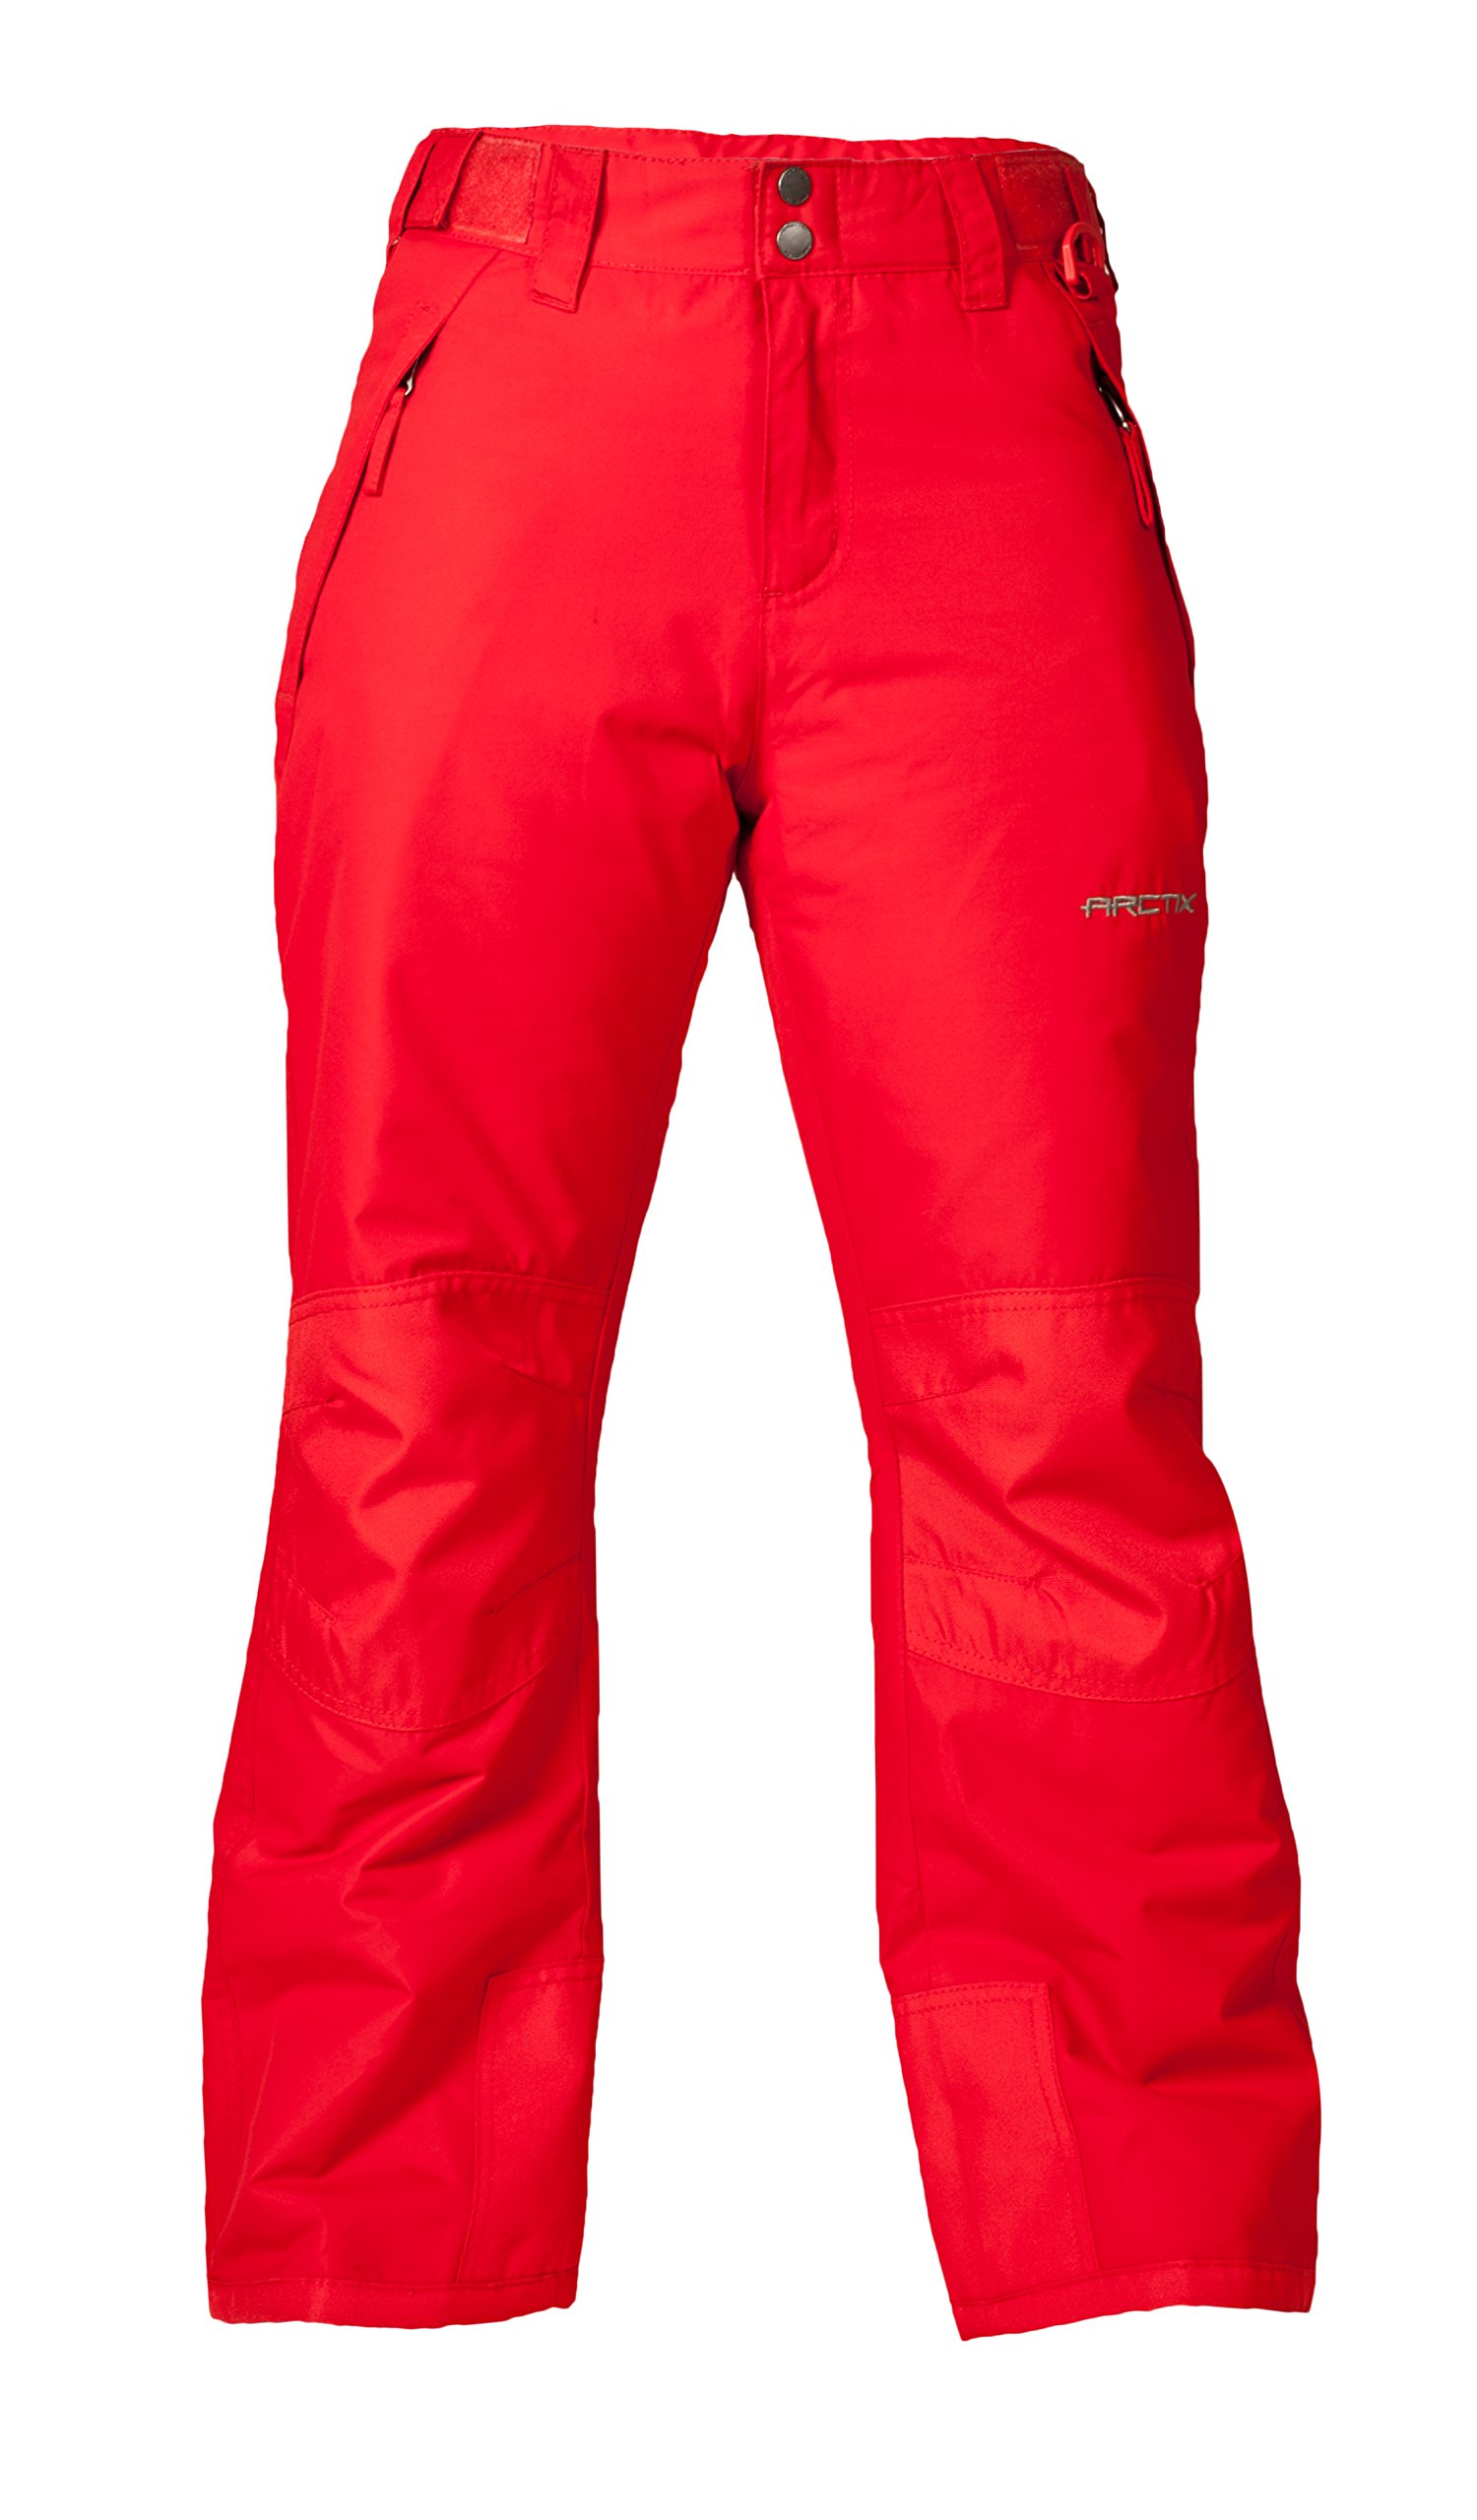 Arctix Youth Snow Pants with Reinforced Knees and Seat, Formula One Red, X-Small by Arctix